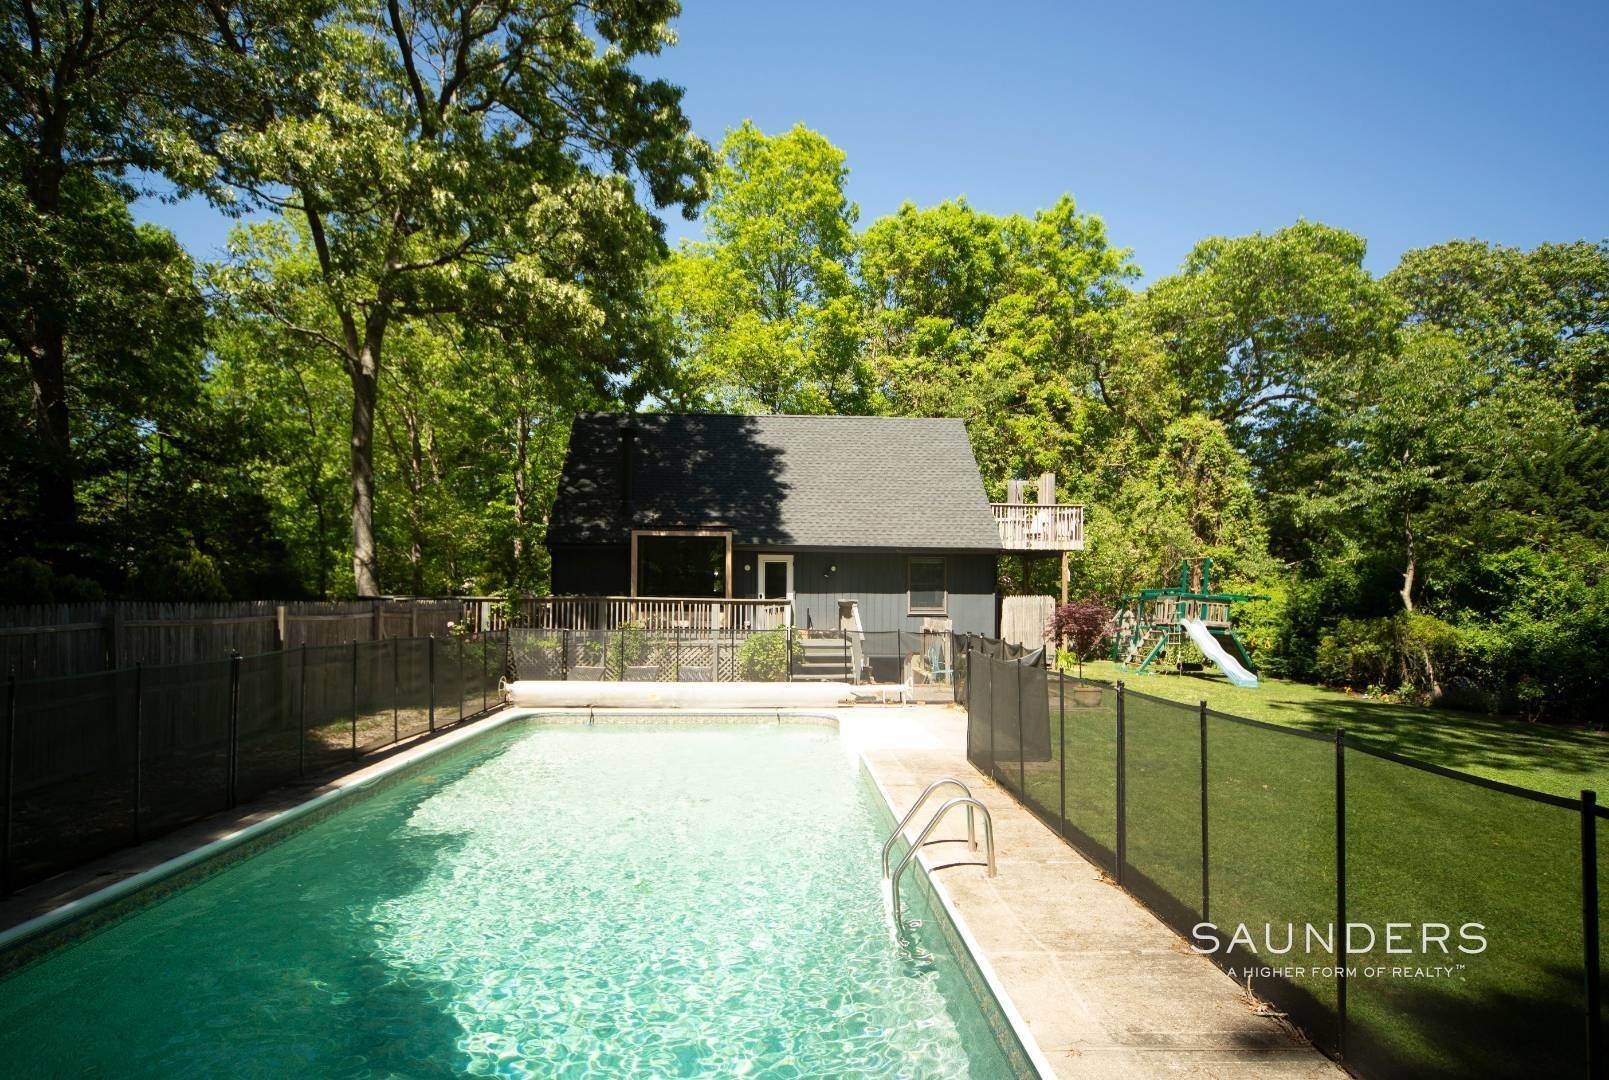 Single Family Homes at Springs Sanctuary 24 Florence Street, East Hampton, East Hampton Town, NY 11937